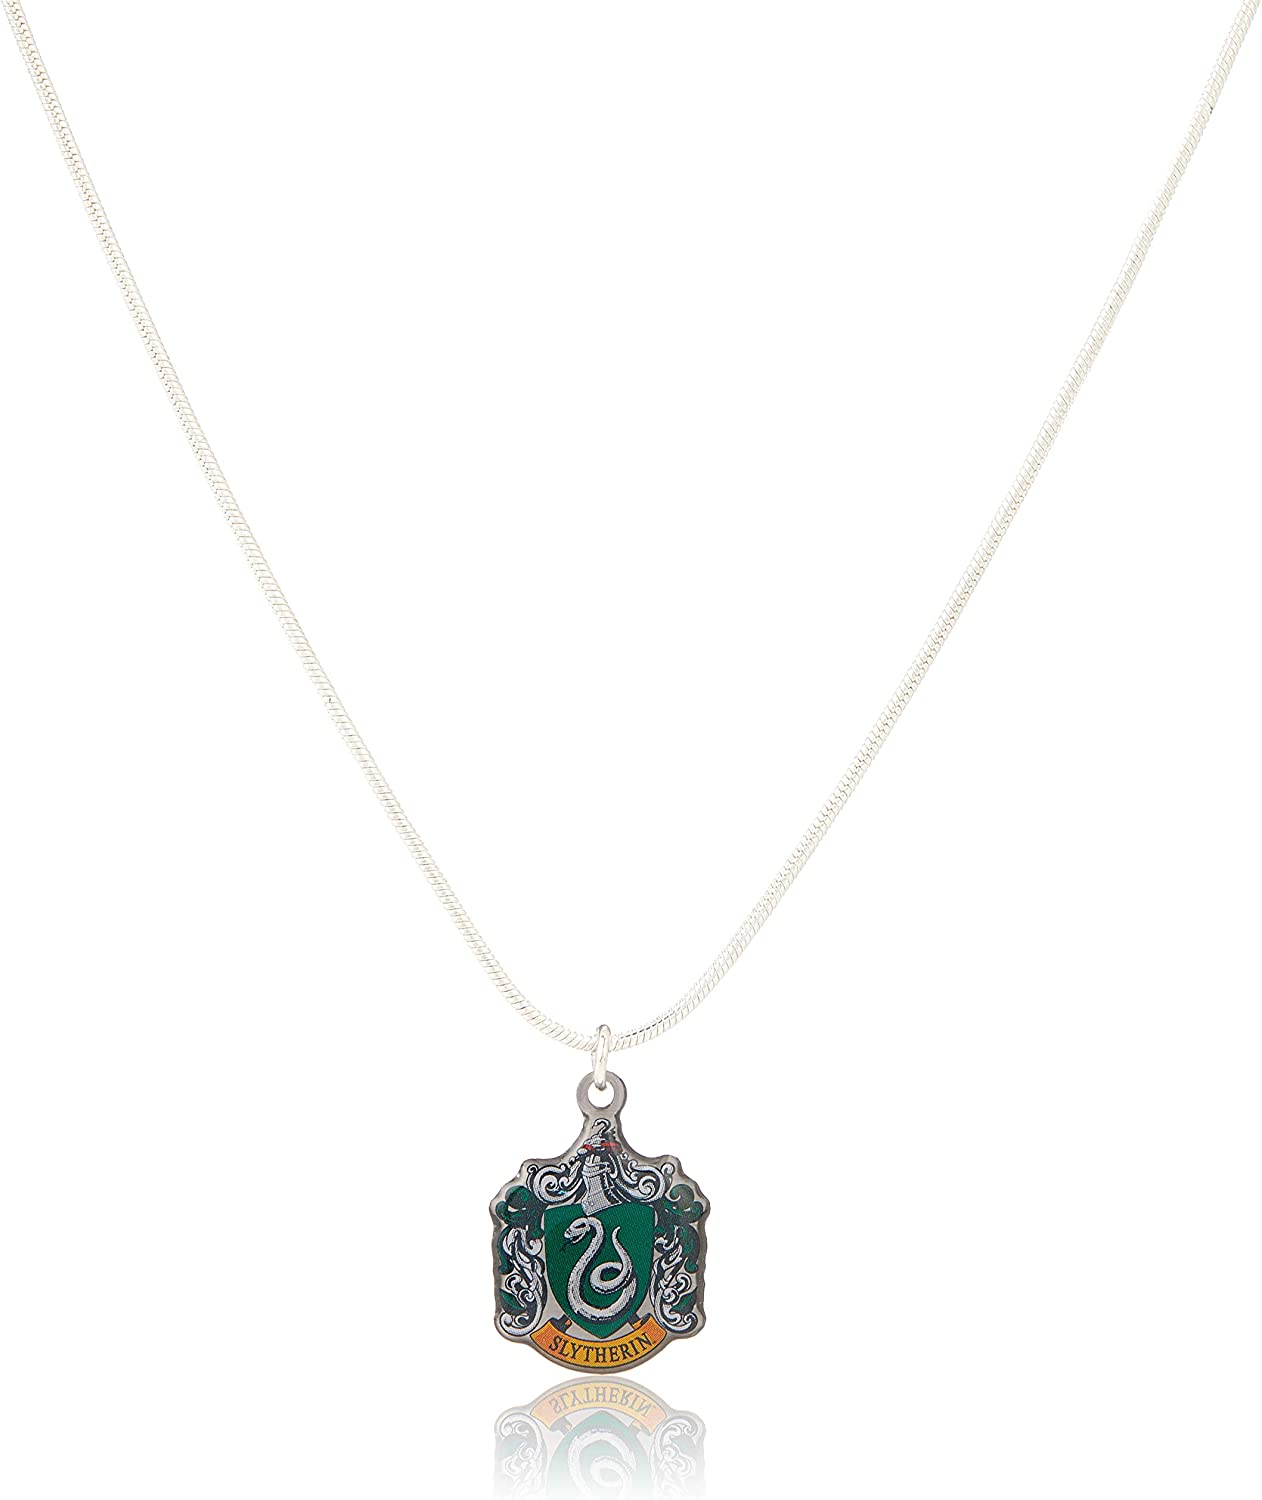 Harry Potter Official Jewelry Slytherin Crest Necklace